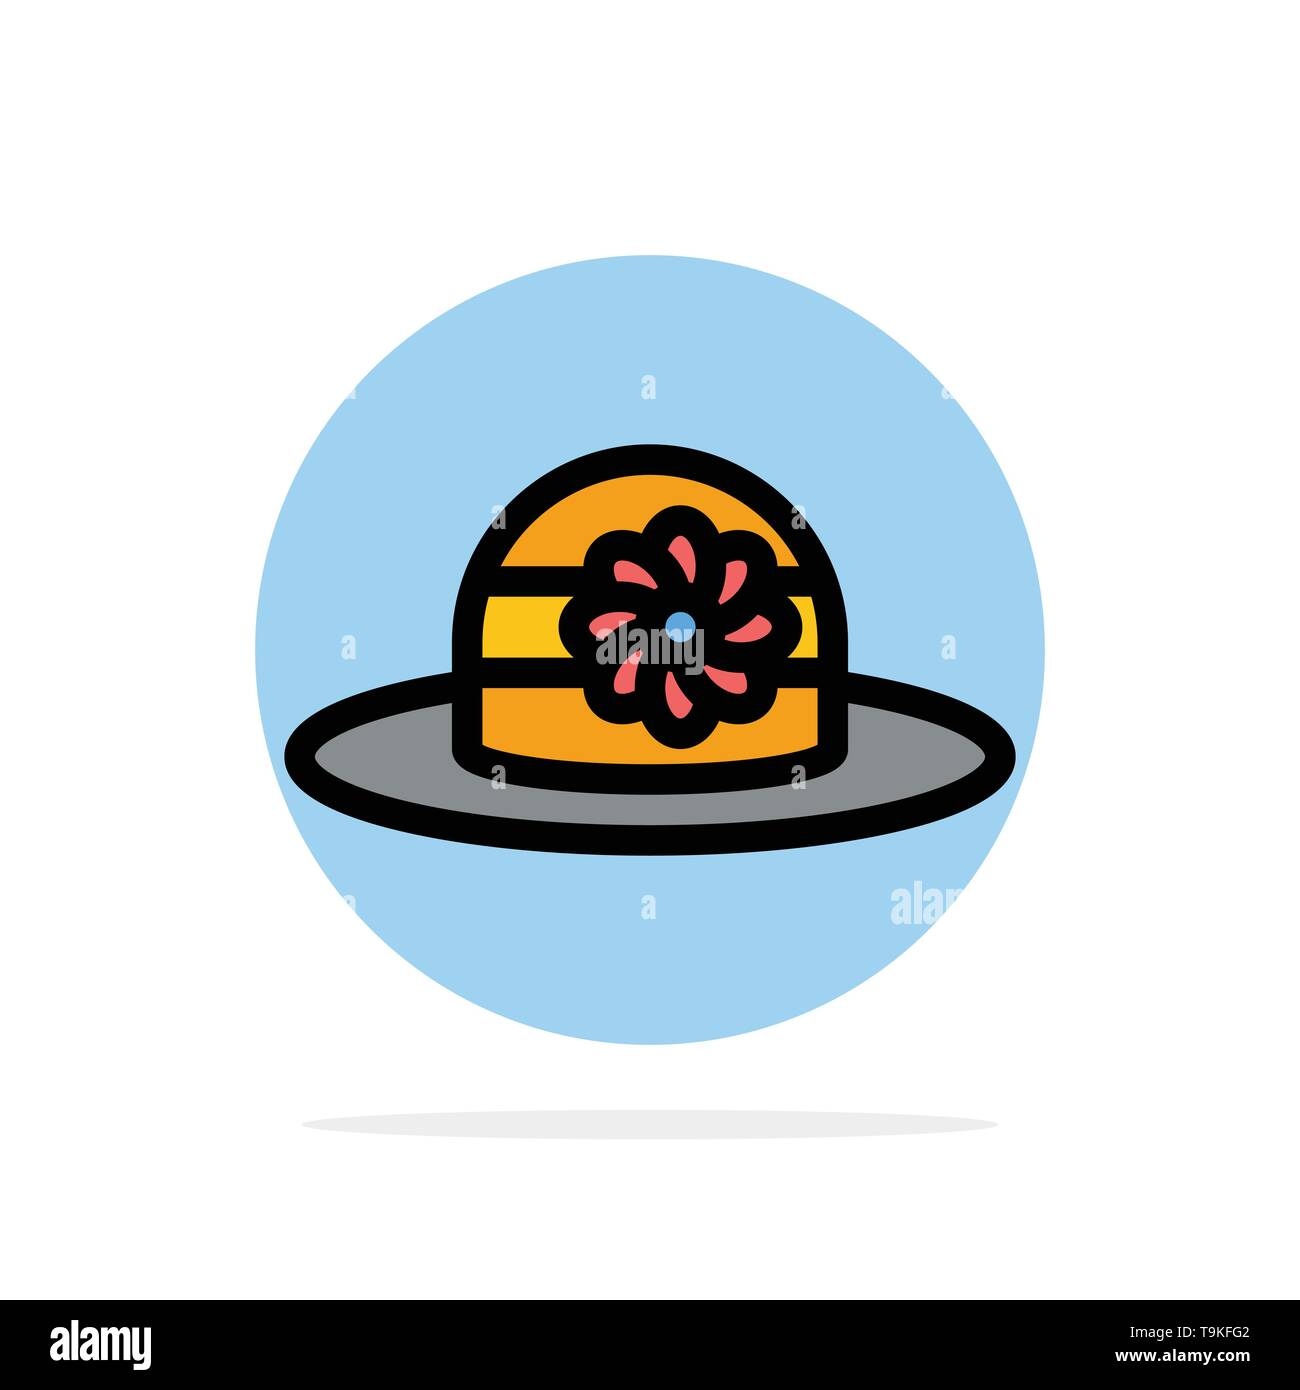 Beach, Hat, Cap Abstract Circle Background Flat color Icon - Stock Image